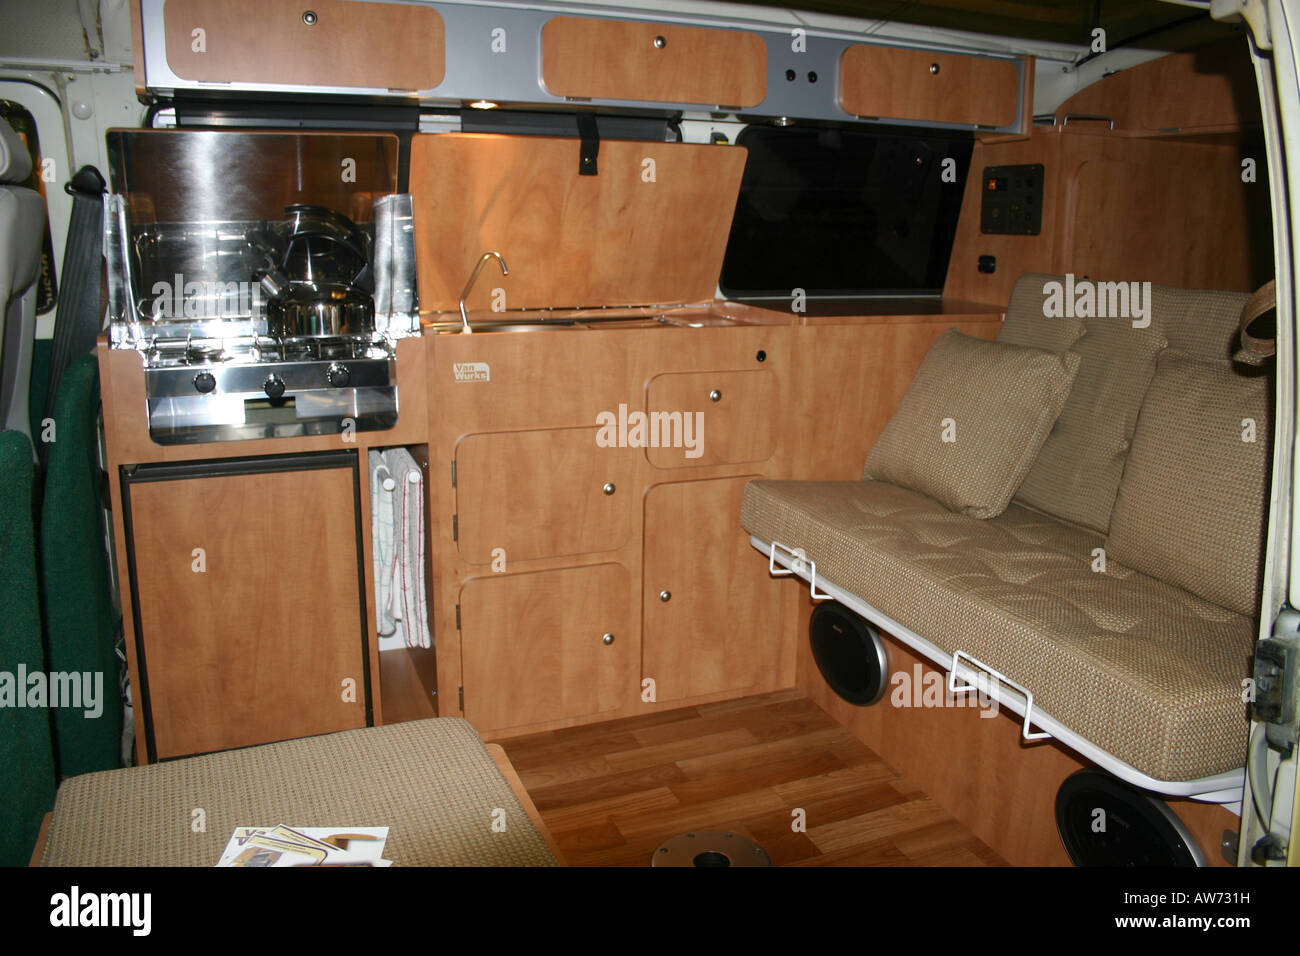 Volkswagen Camper Van Interior Stock Photo Royalty Free